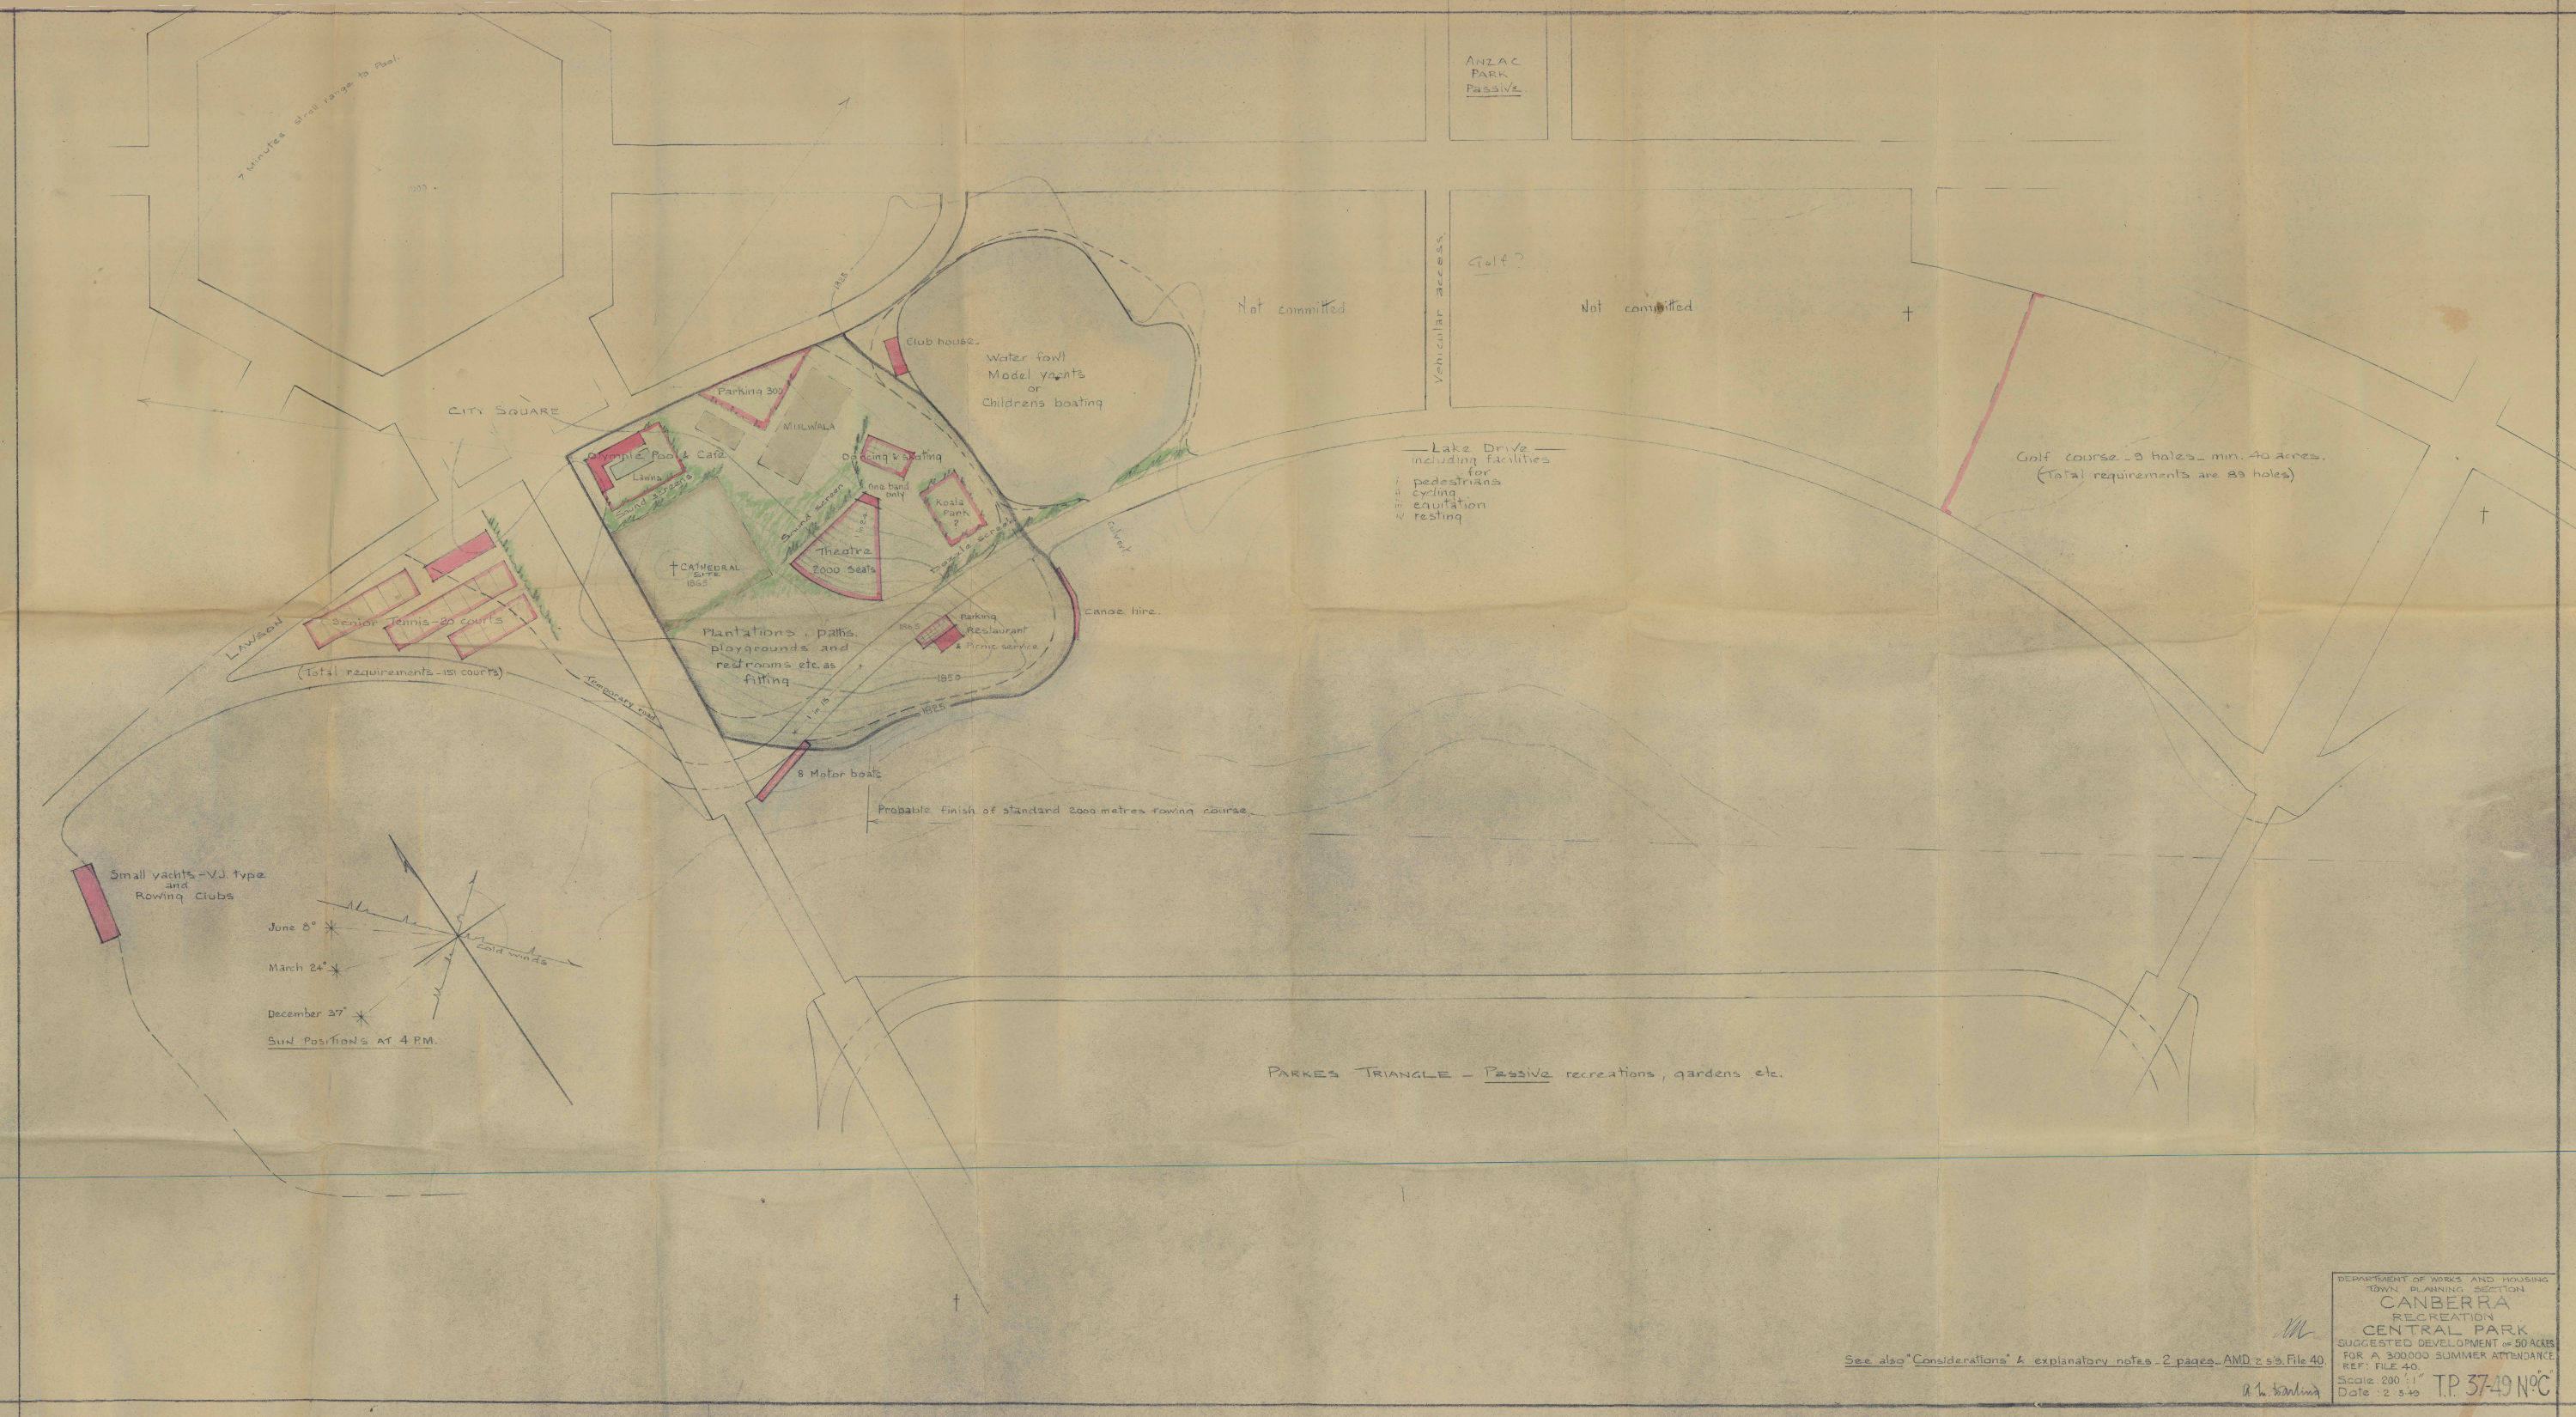 1949 proposal plan for Commonwealth Park TP37/49C